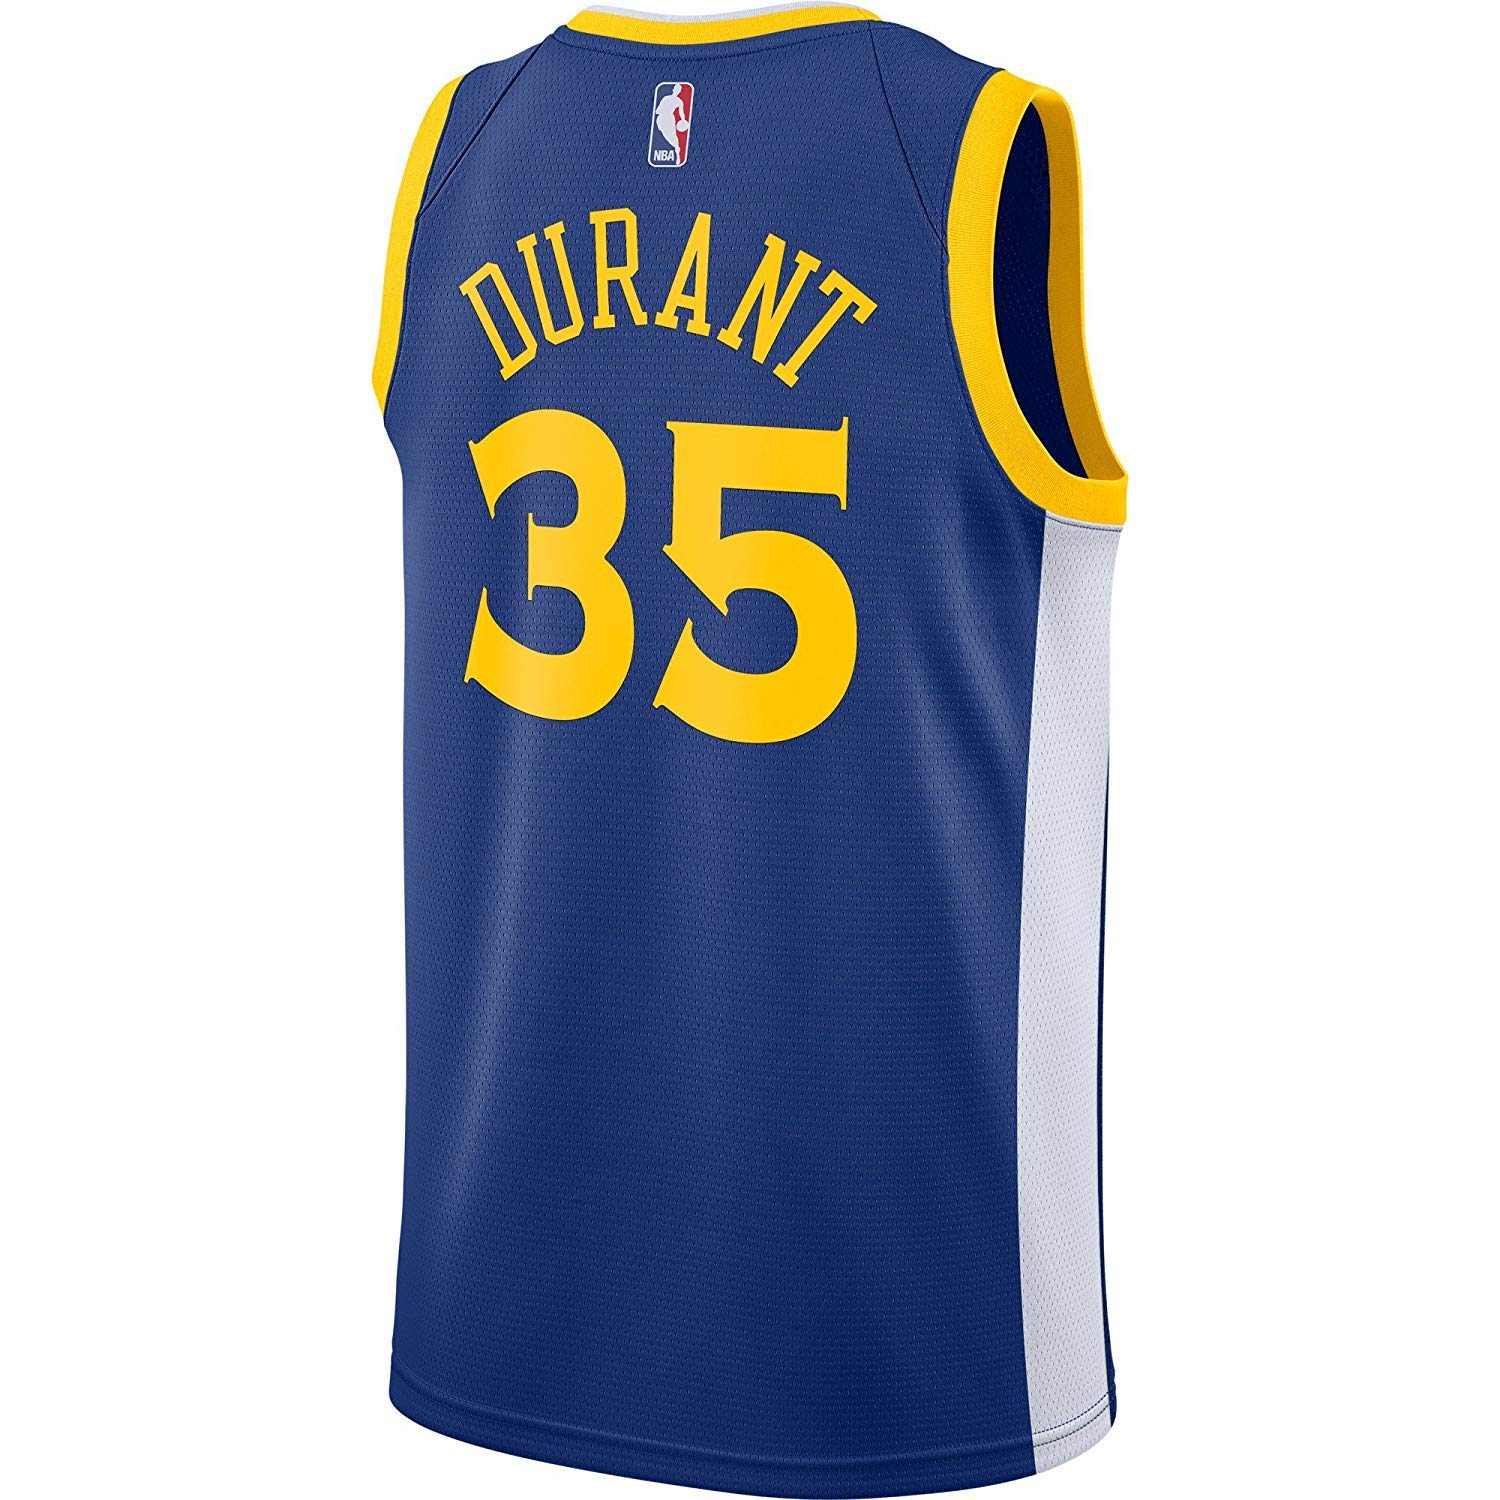 0a1a36ee1d1eb Amazon.com : Nike Kevin Durant Golden State Warriors NBA Youth 8-20 ...